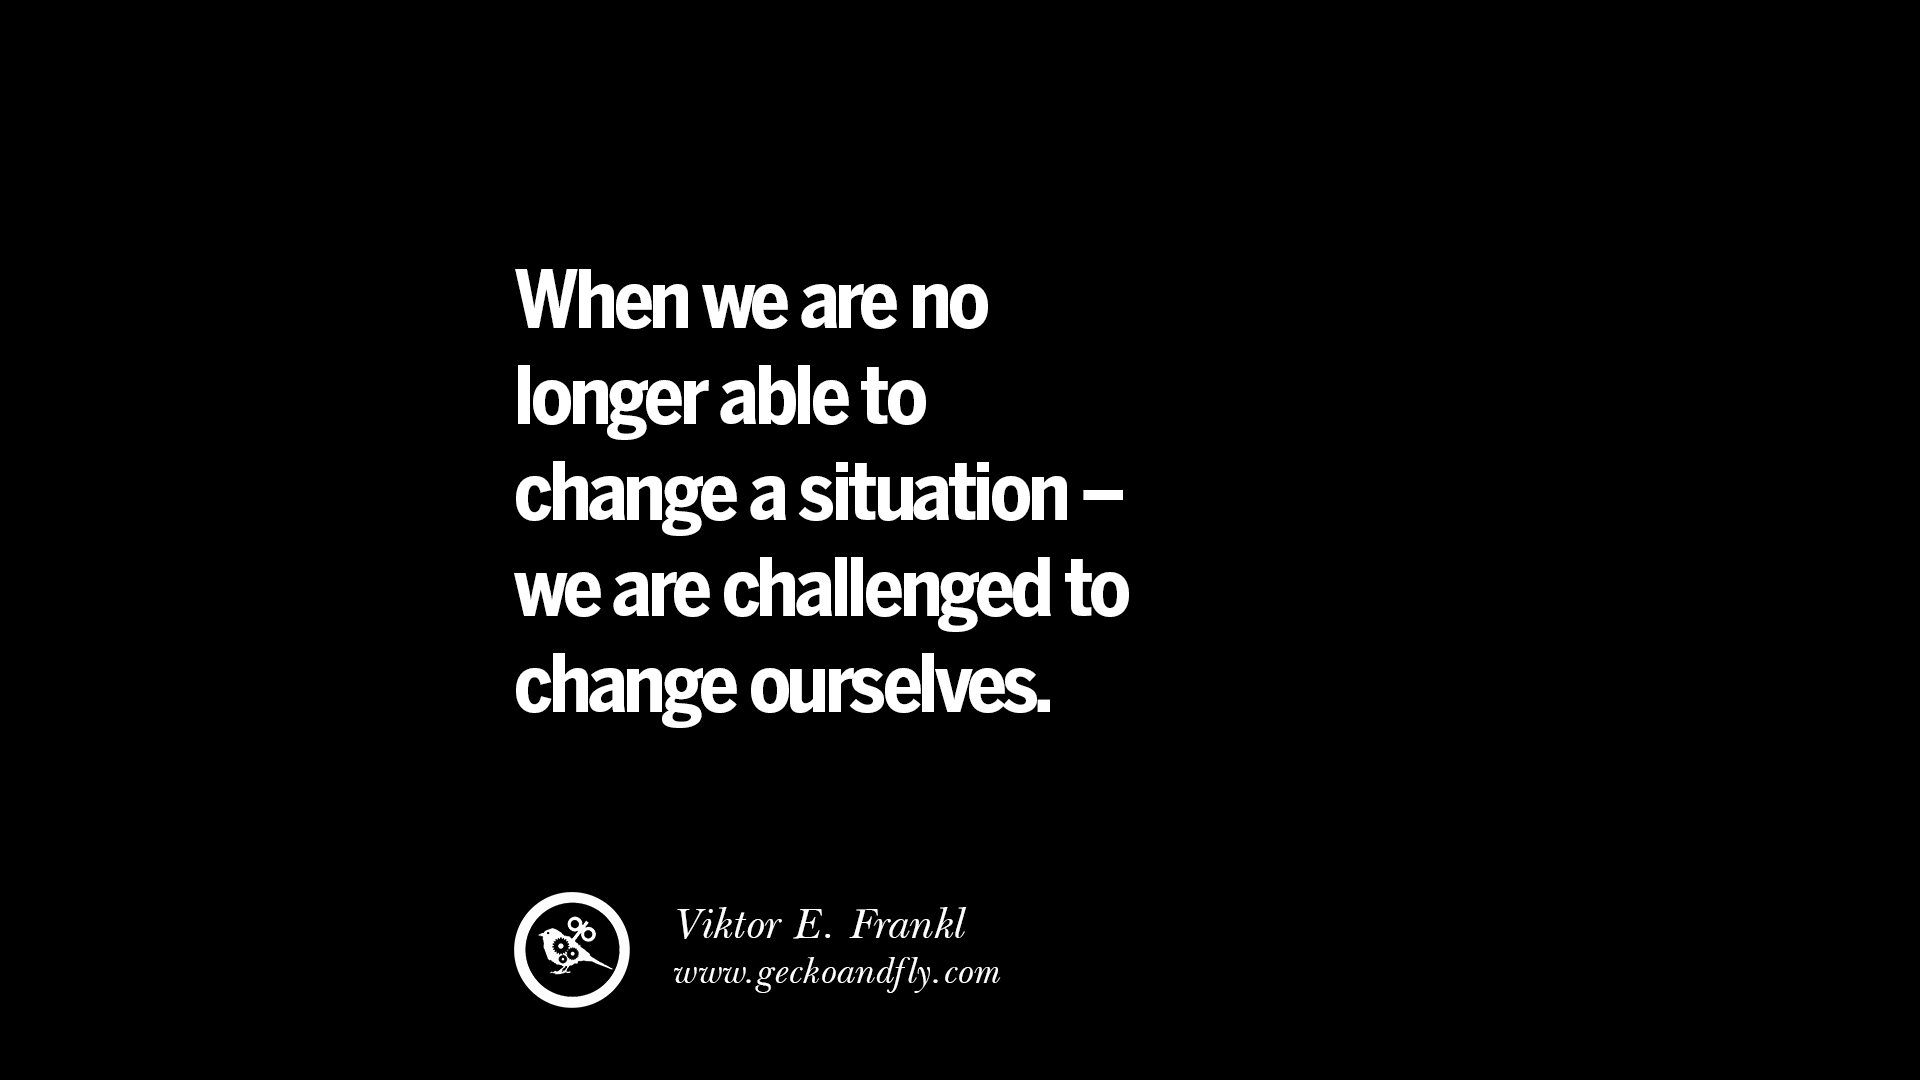 Quotes On Change 45 Quotes On Change And Changing Our Attitudes  Geckoandfly 2018